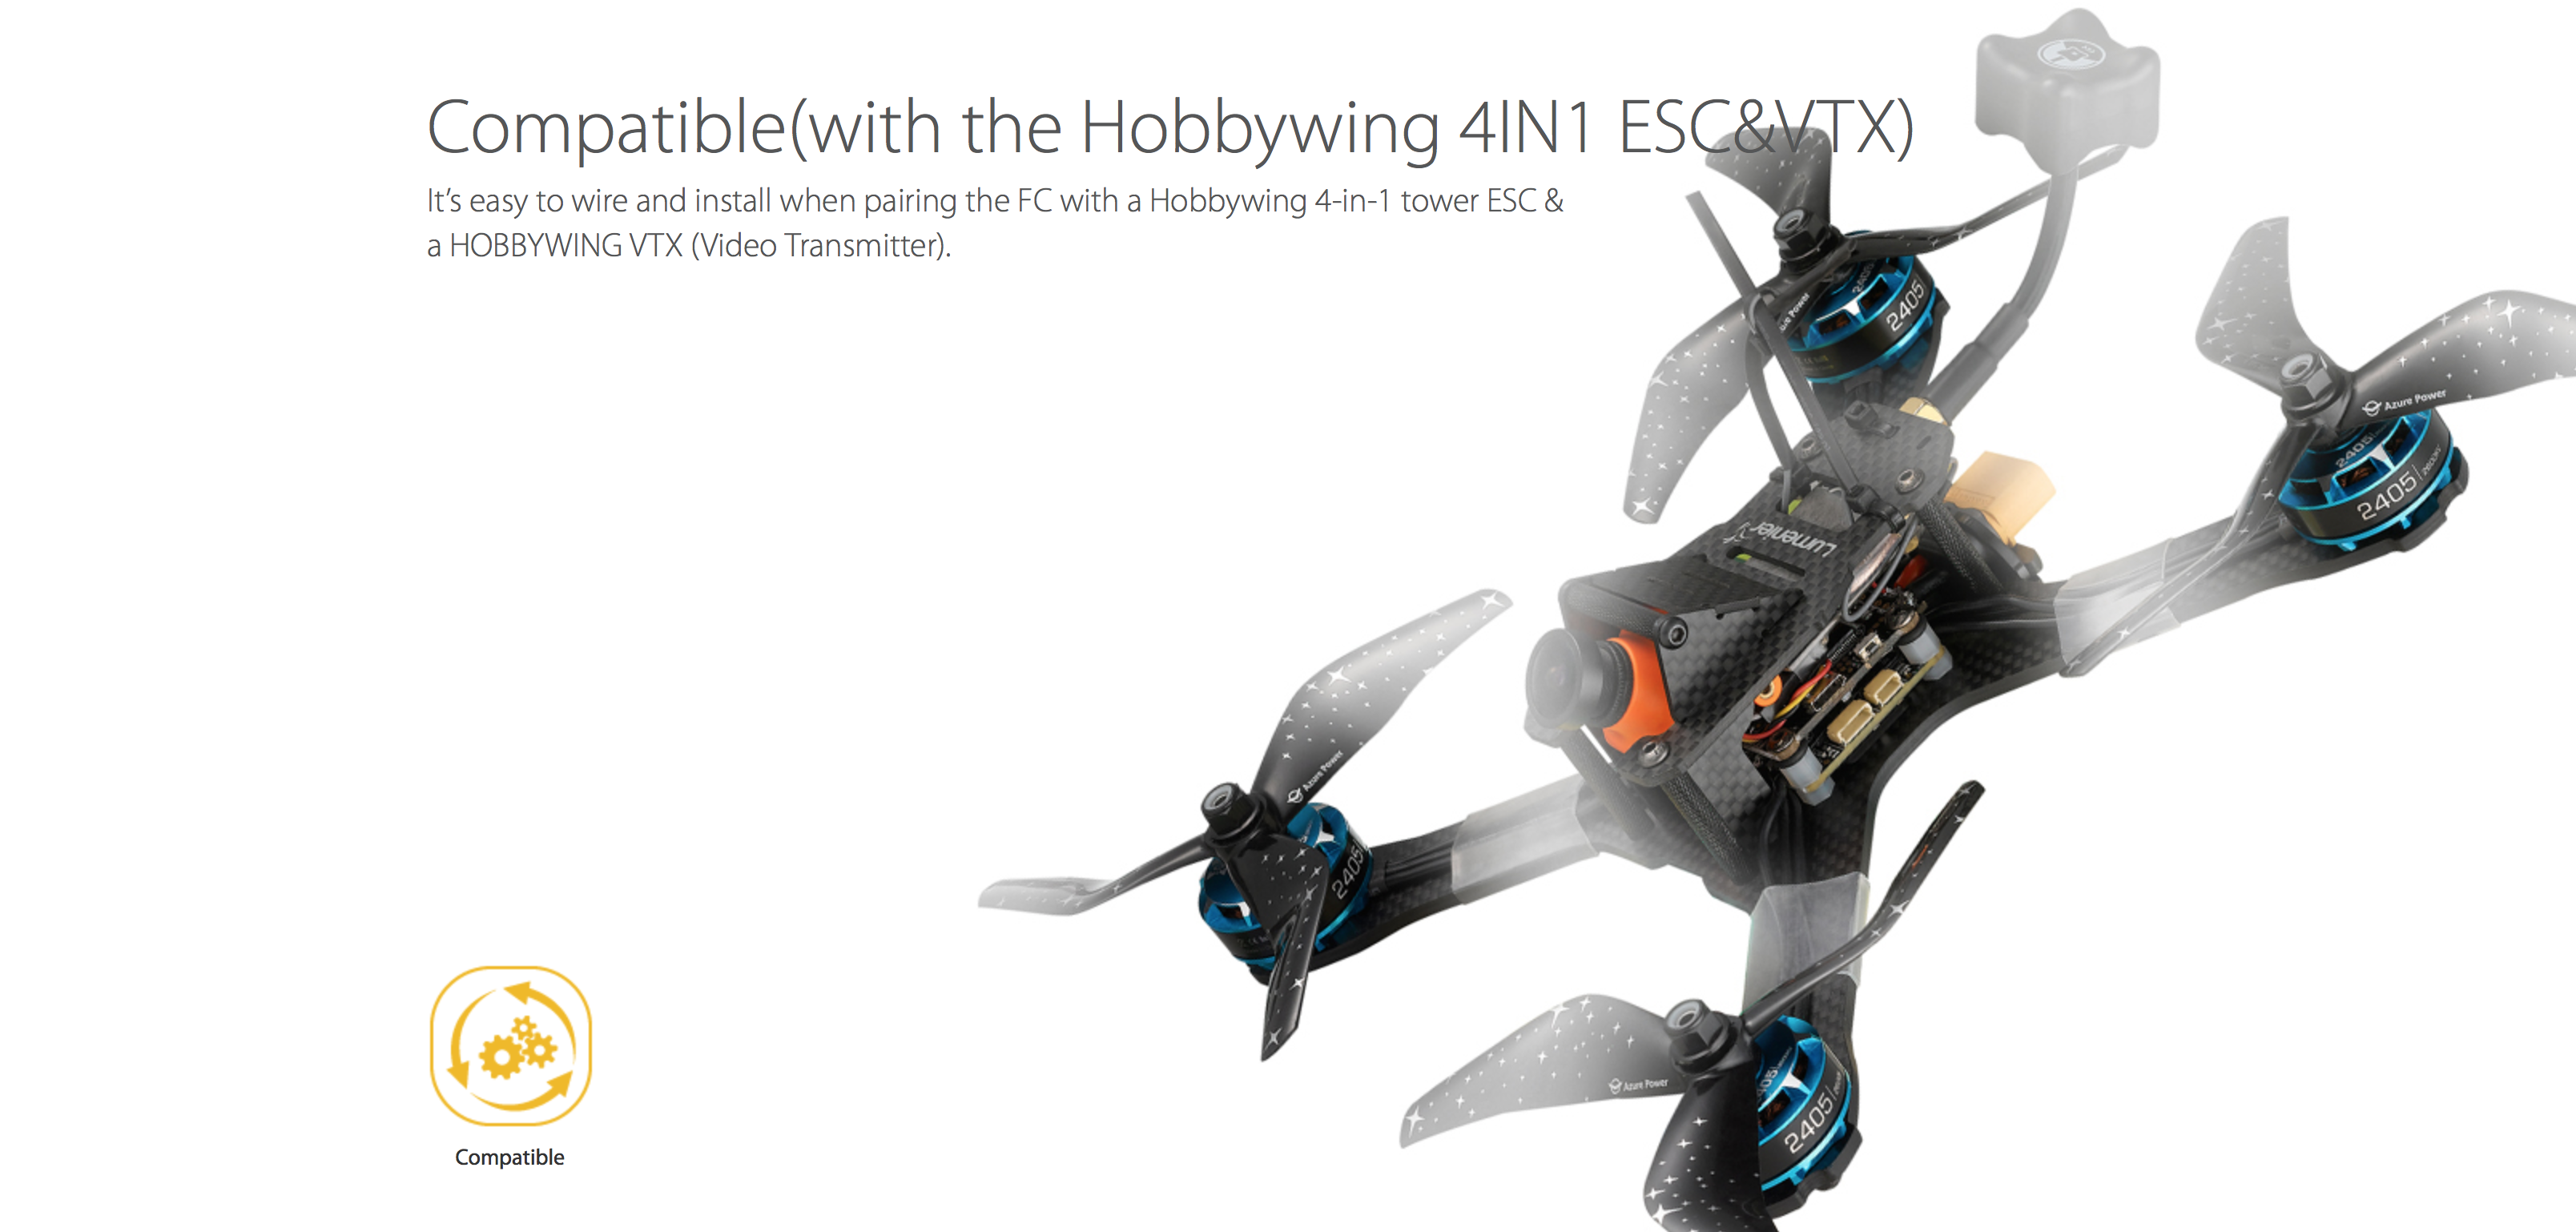 Compatible(with the Hobbywing 4IN1 ESC&VTX) It's easy to wire and install when pairing the FC with a Hobbywing 4-in-1 tower ESC & a HOBBYWING VTX (Video Transmitter).